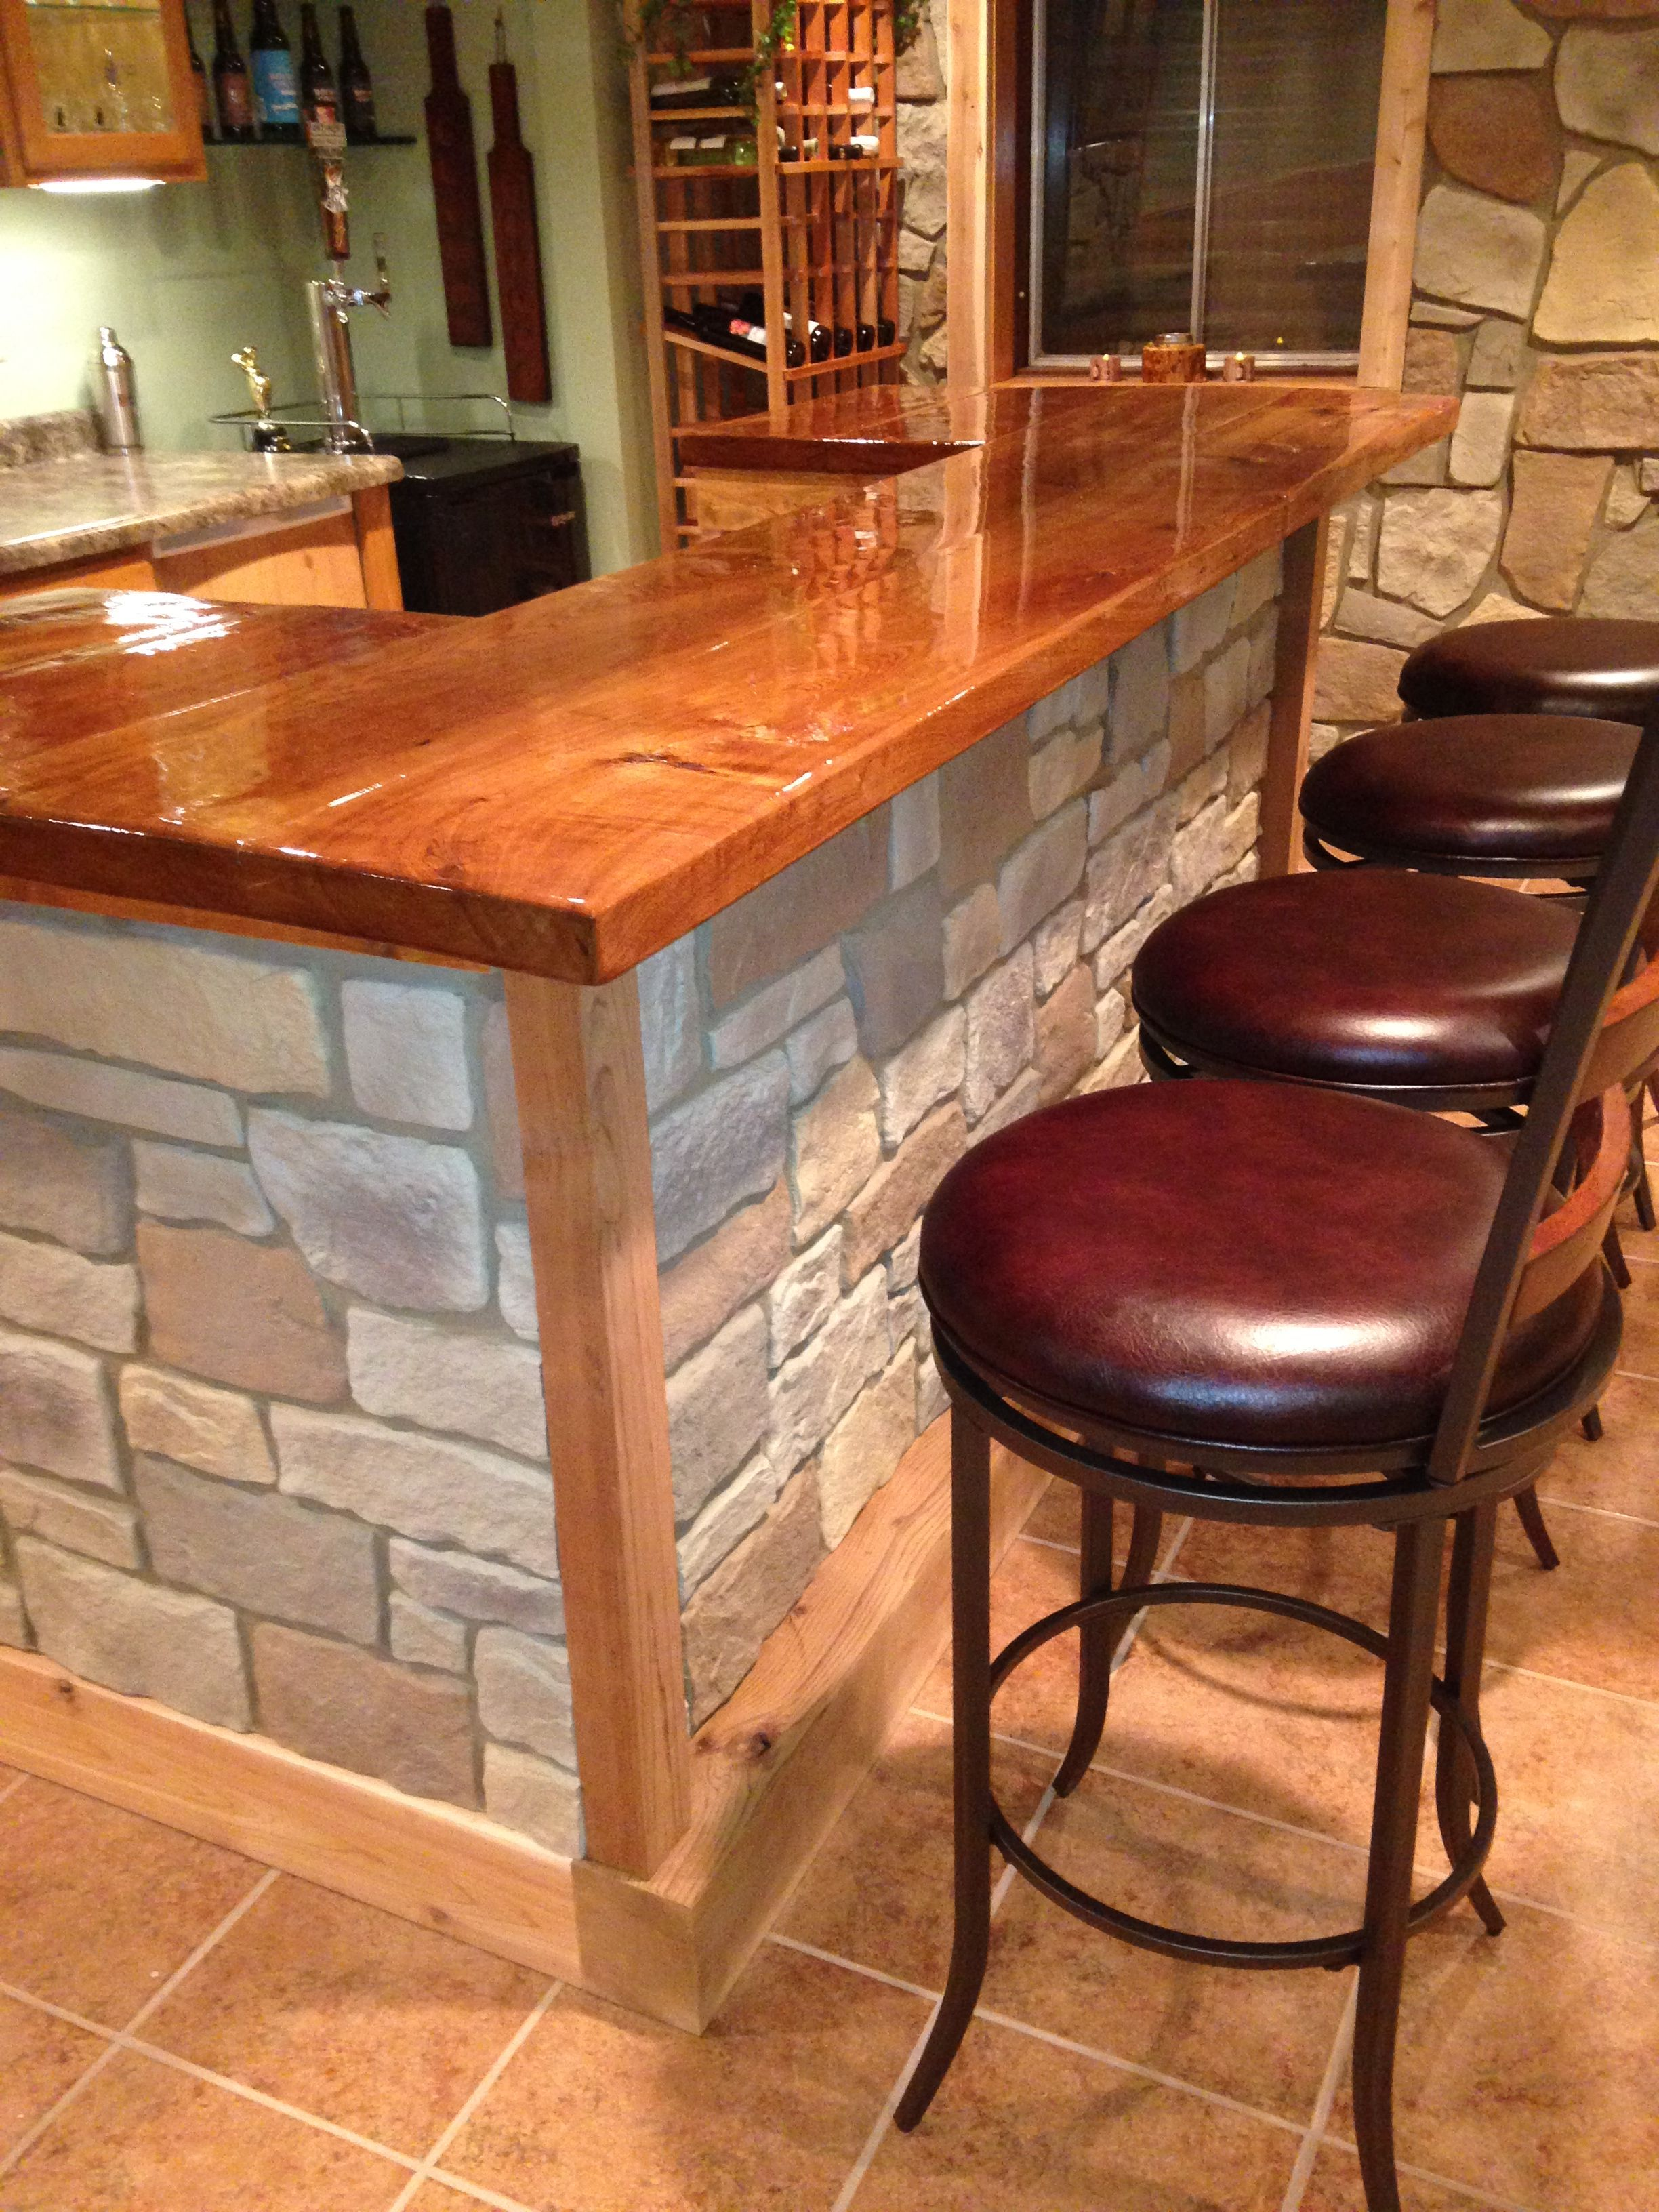 Transforming A Basement With A Diy Wet Bar Home Bar Plans Diy Home Bar Bars For Home